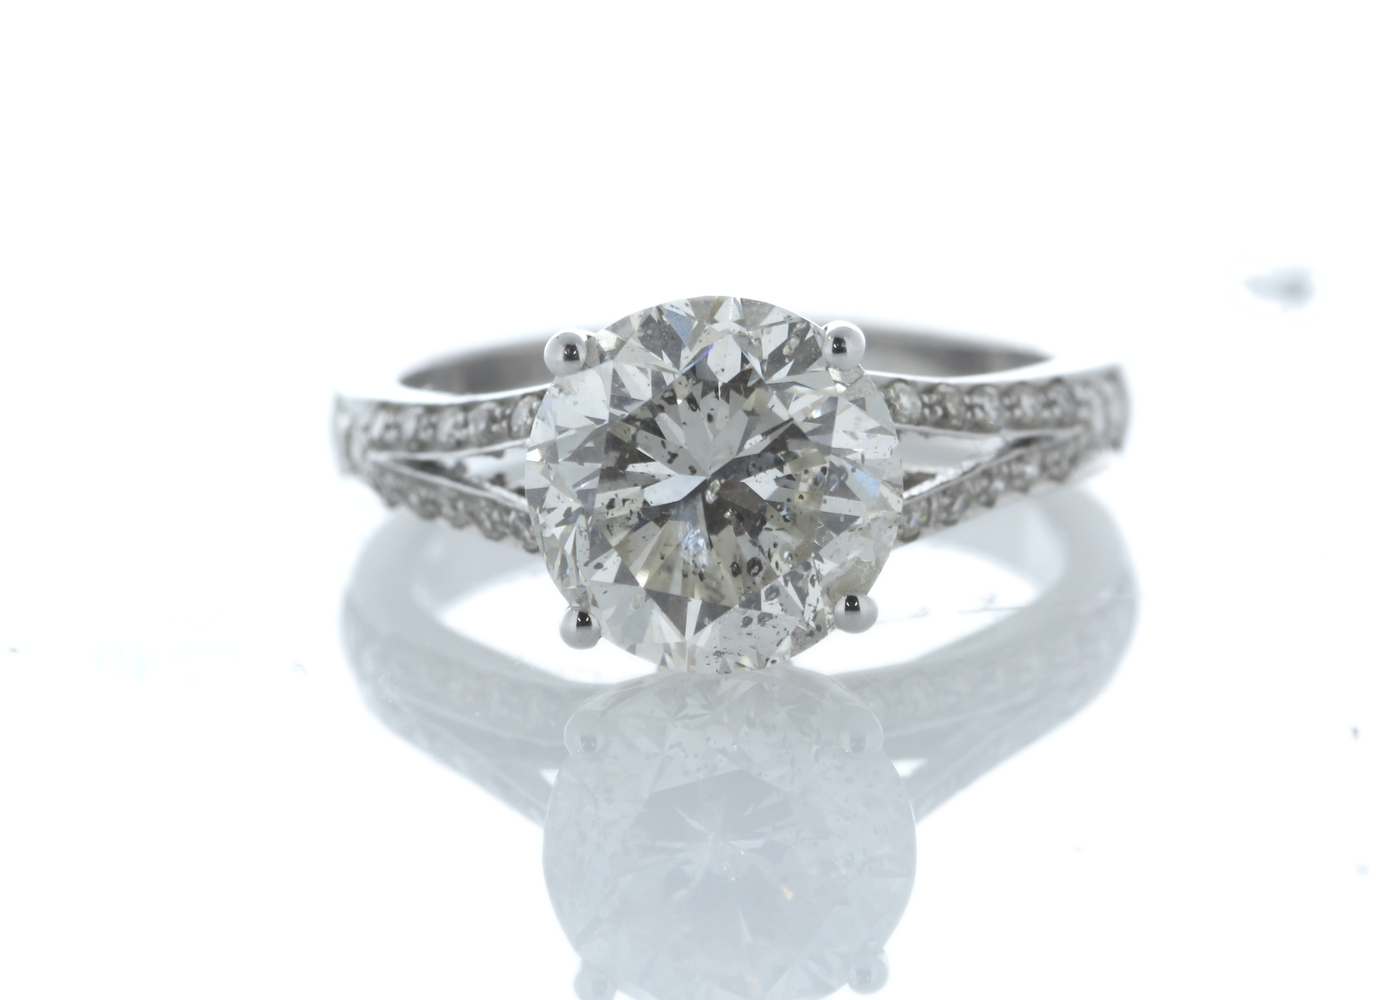 Lot 25 - 18ct White Gold Single Stone Prong Set With Stone Set Shoulders Diamond Ring 3.56 Carats